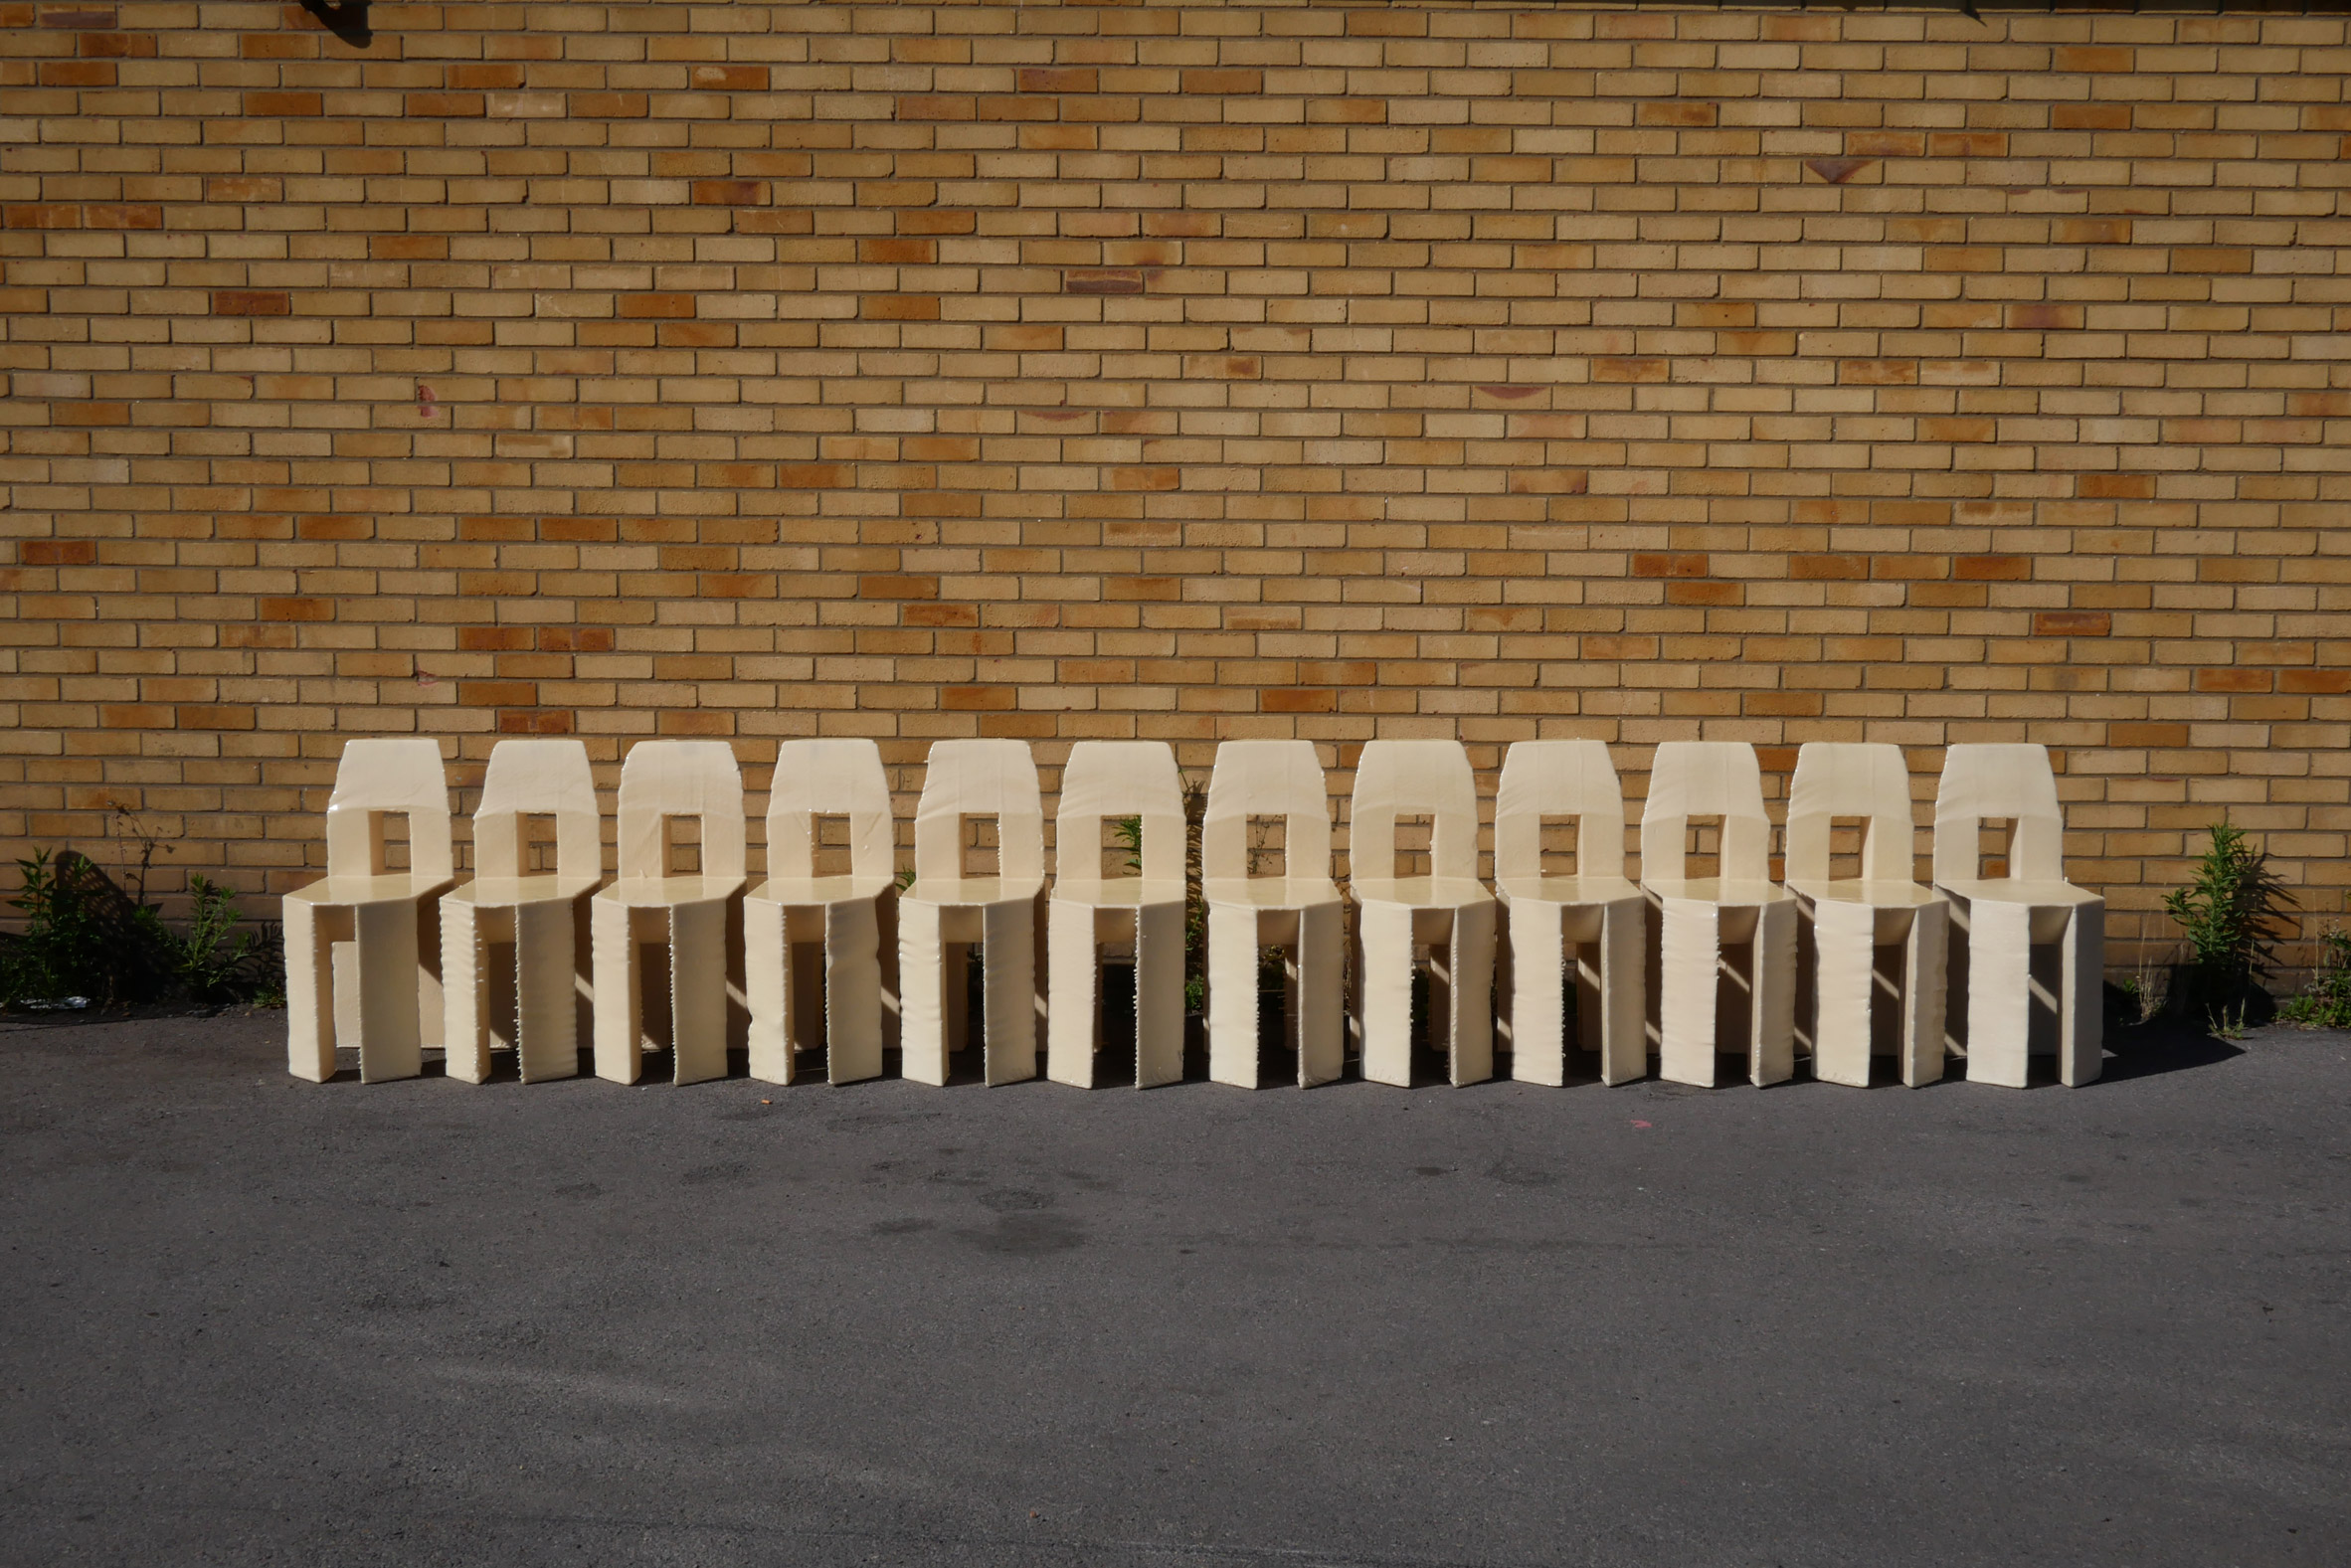 A collection of Lamb's chairs